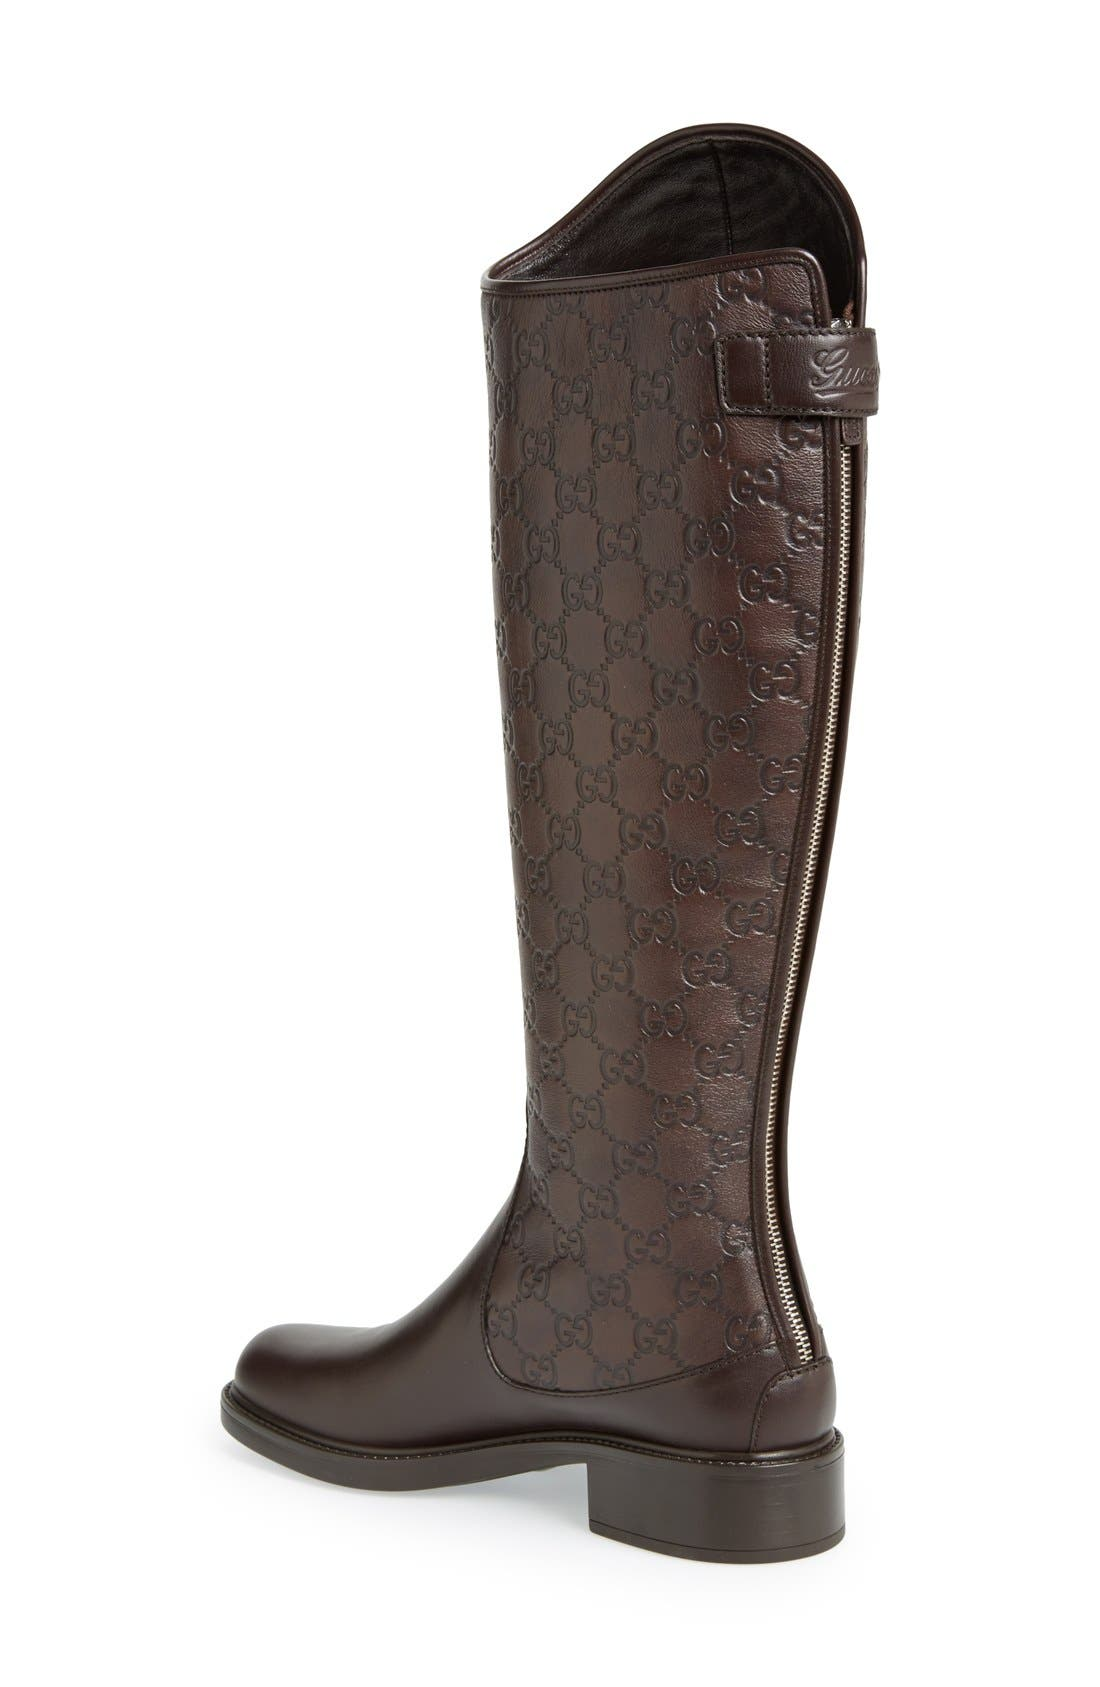 GUCCI,                             'Maud' Boot,                             Alternate thumbnail 2, color,                             200